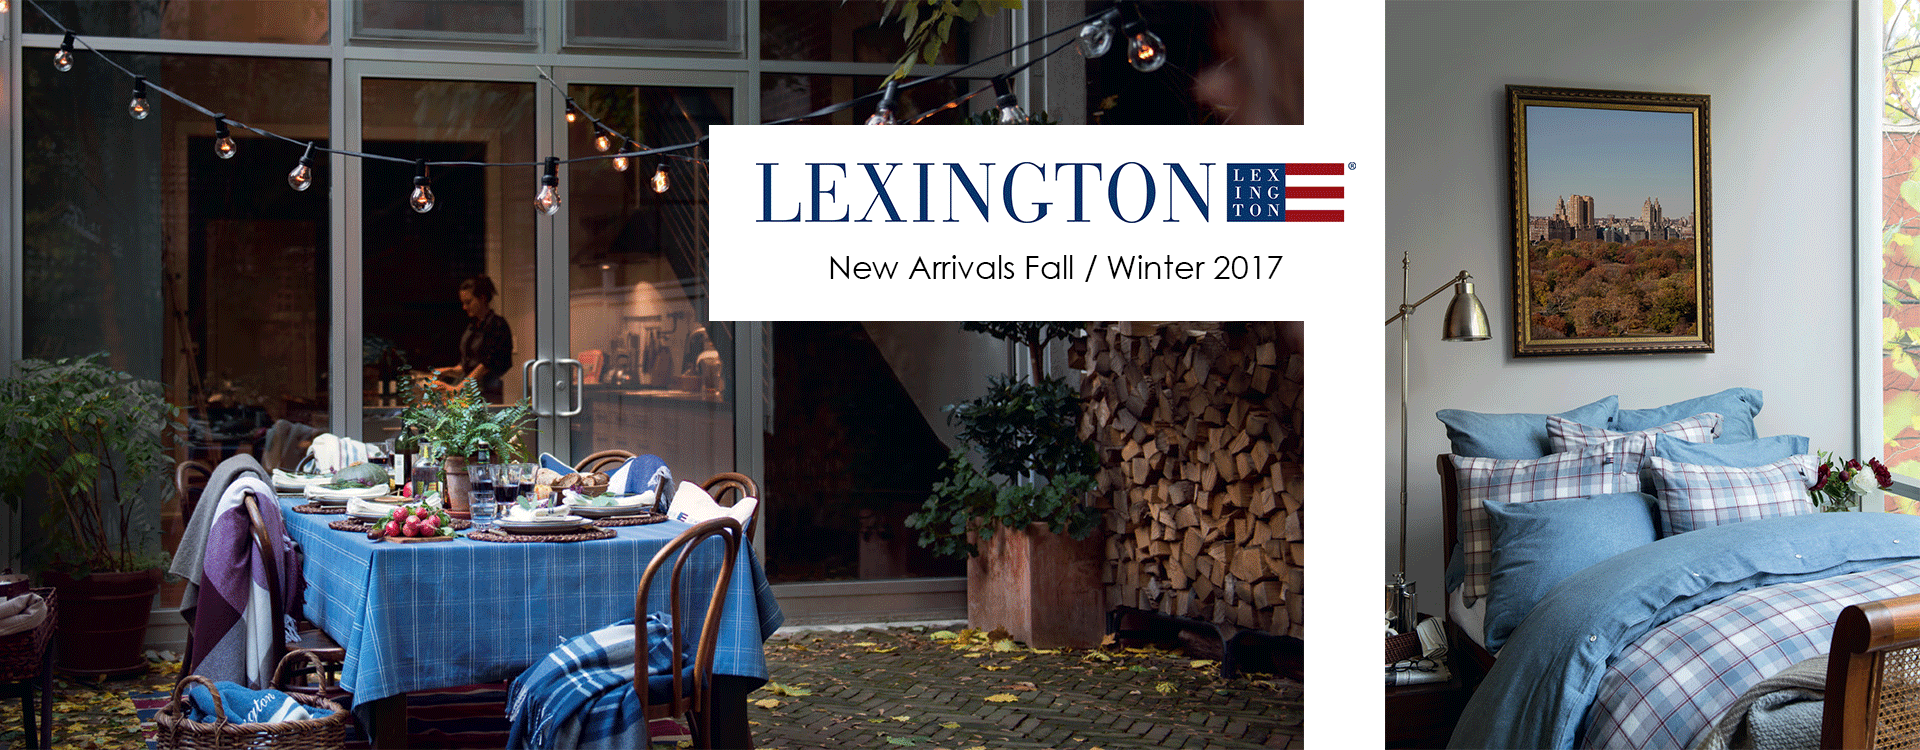 lexington-fall-winter